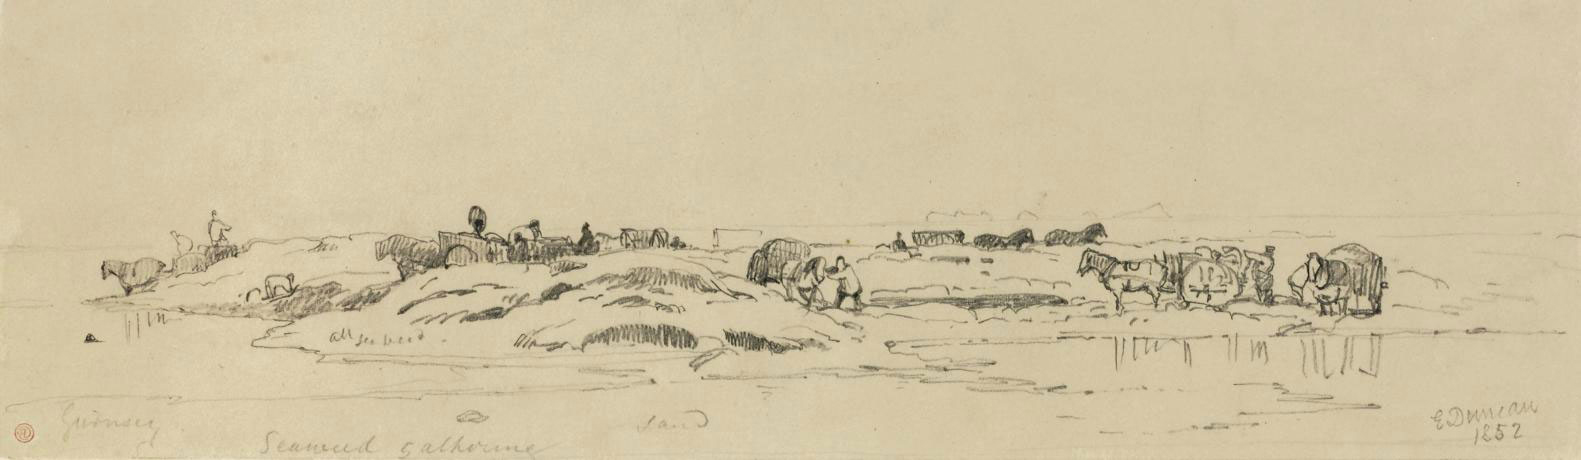 Sketches in Jersey and Guernsey, including scenes of 'Drawing Lumber'; 'Seaweed gathering'; 'Launching boat'; and 'Pulling Wreck ashore'